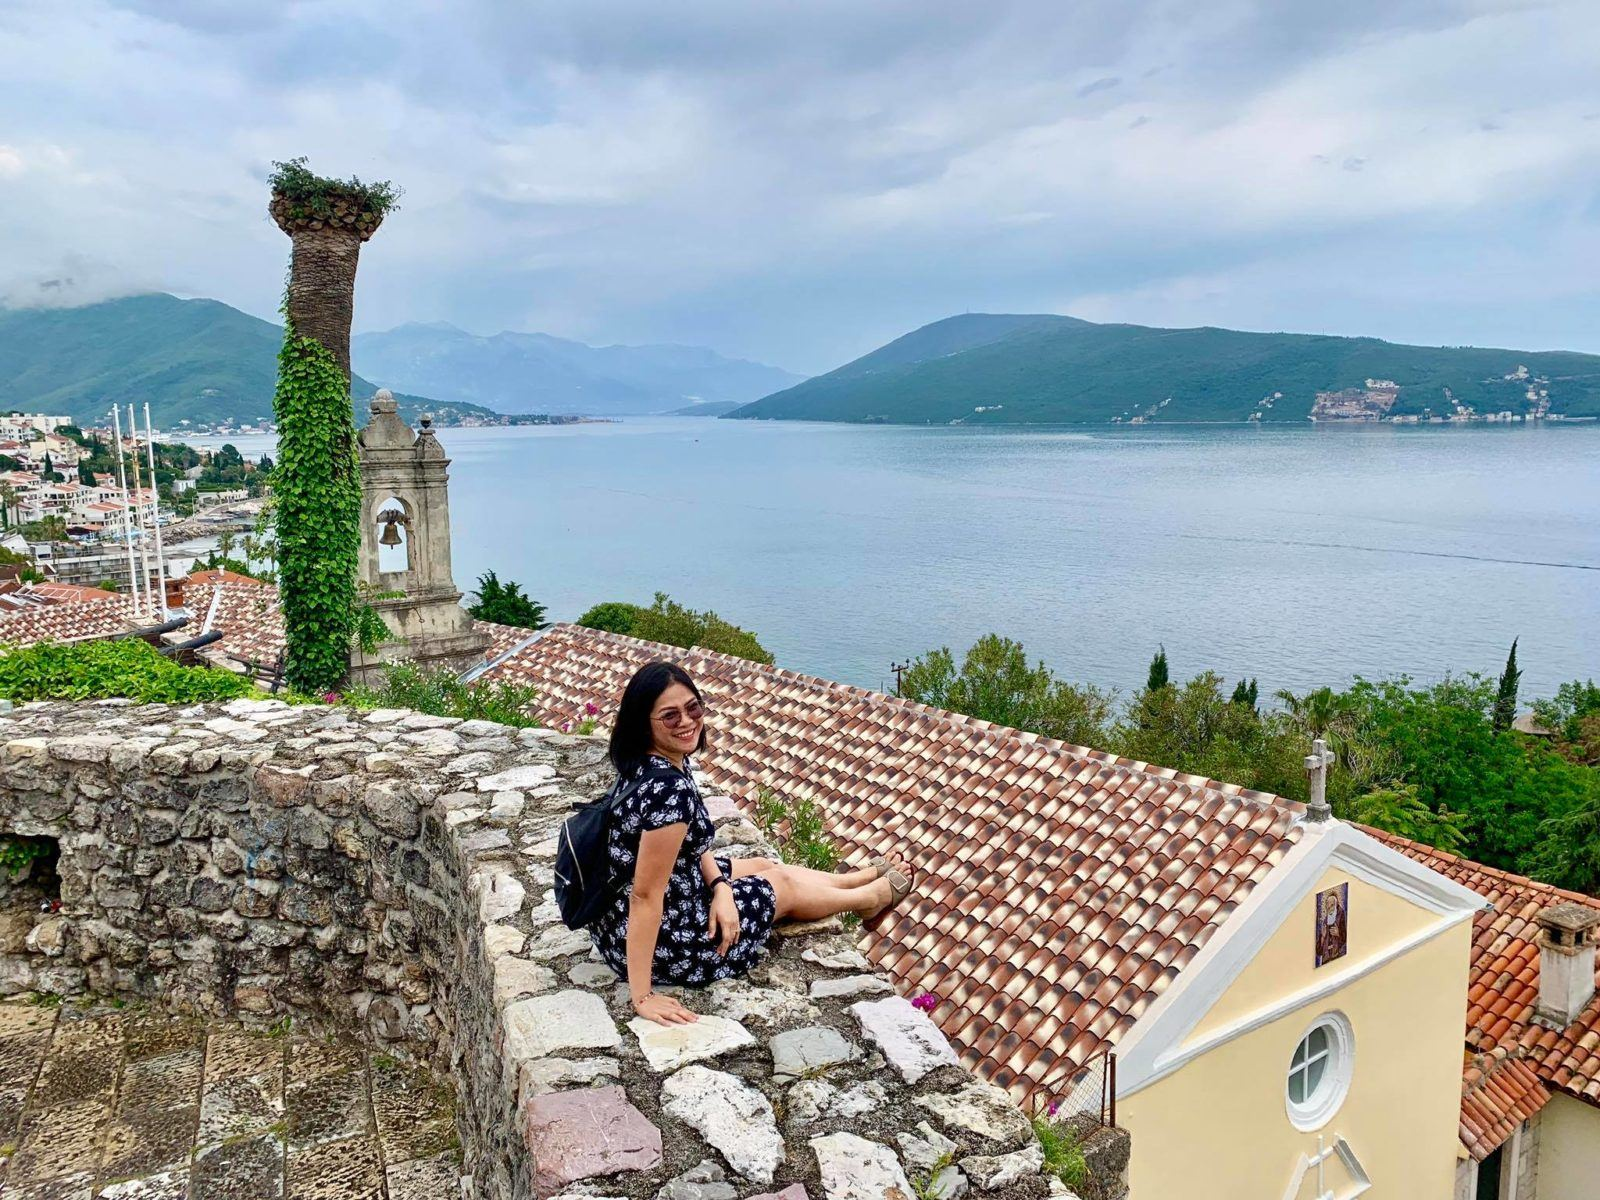 Expat Life in Montenegro Day 3 We have our first visitor already in our new home here in Herceg Novi